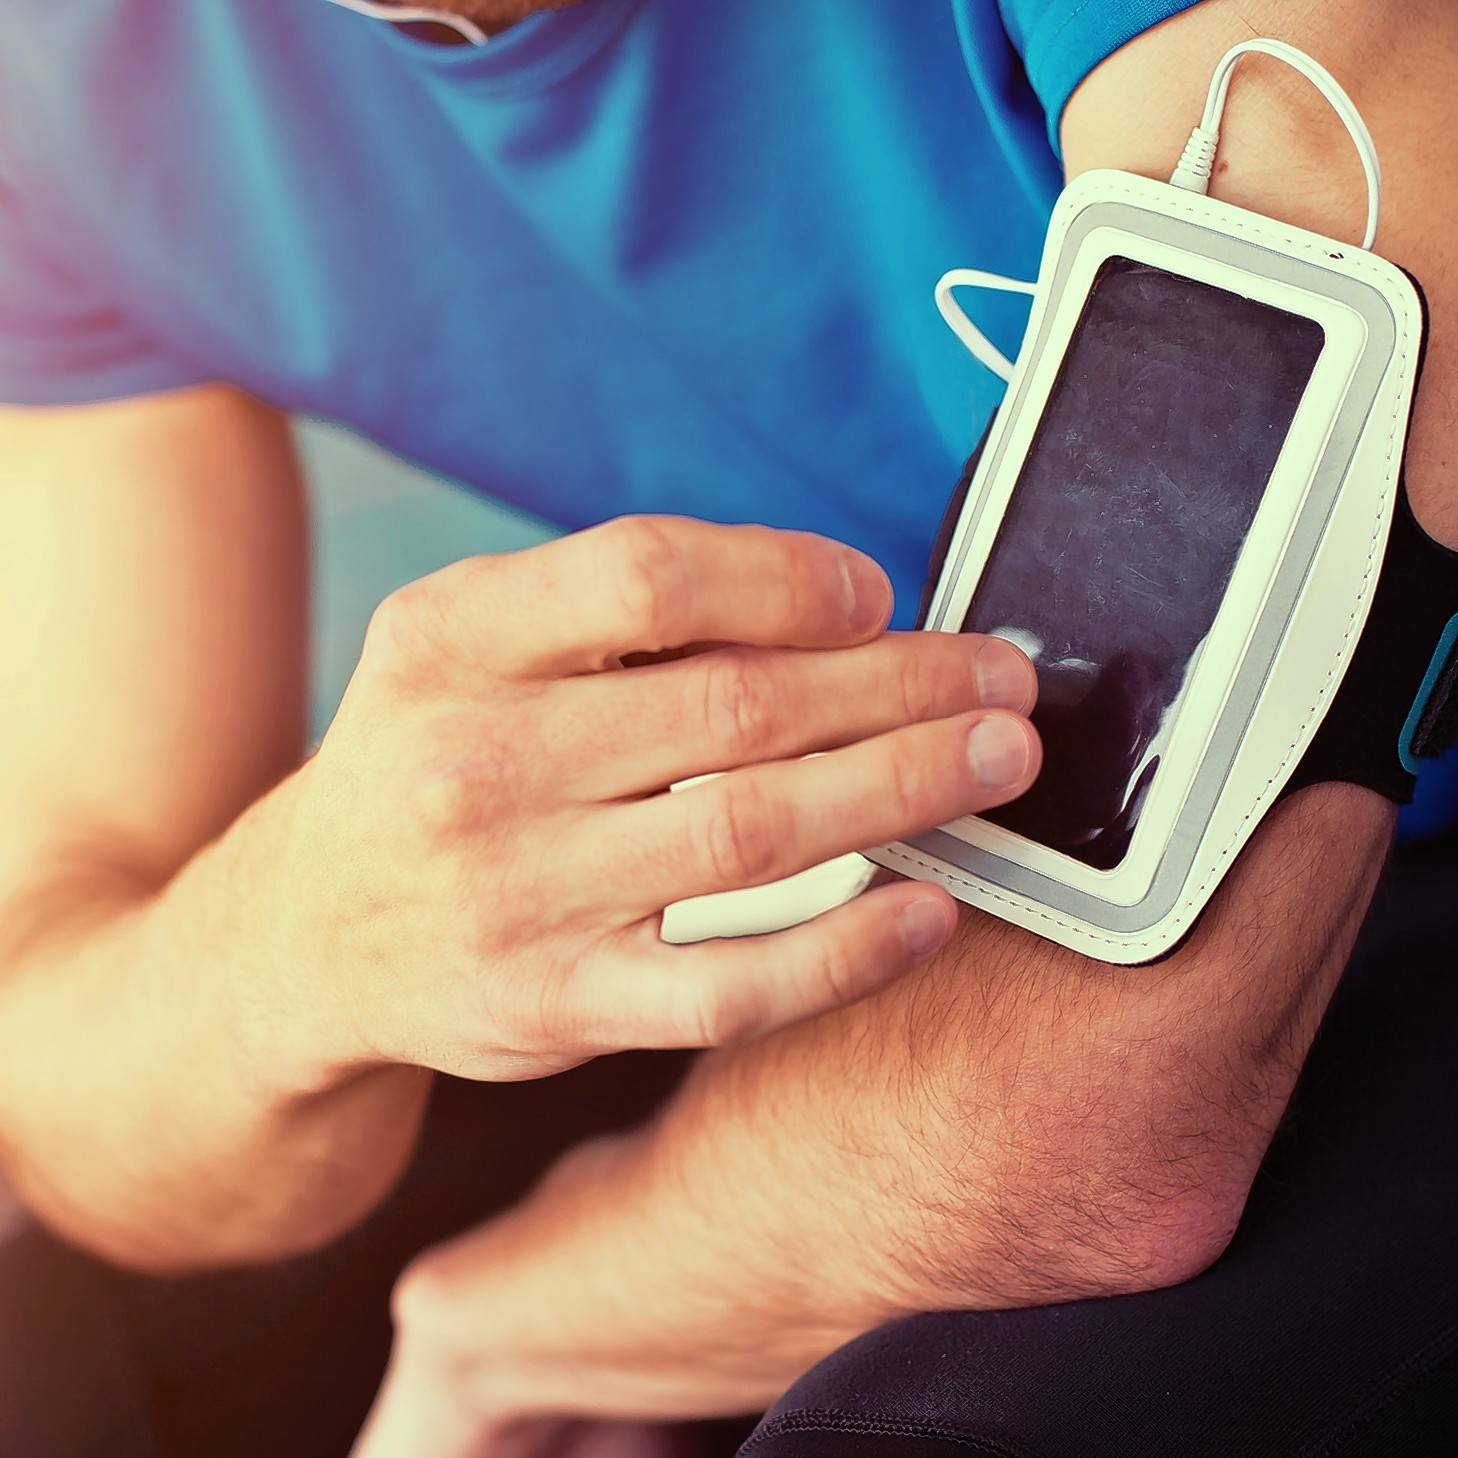 Wearable technology is the top fitness trend for 2019, according to the American College of Sports Medicine.